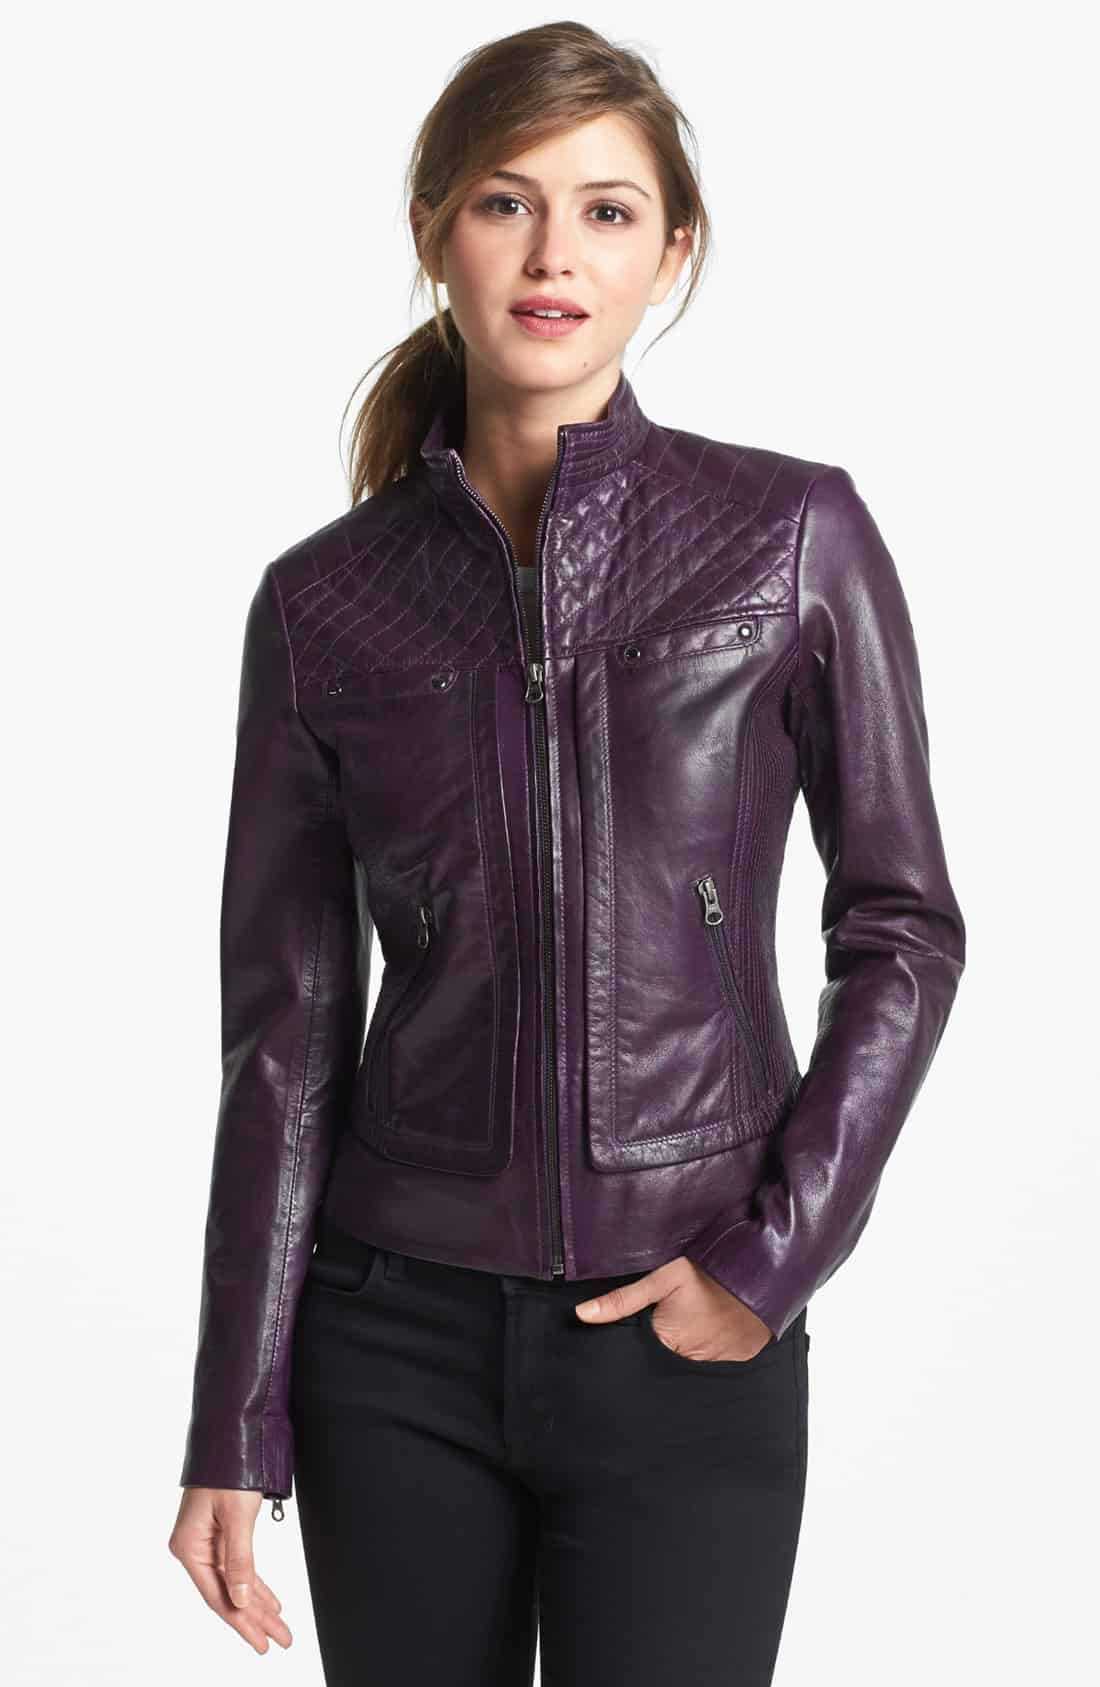 Leather Coats The Most Trusted Source of Quality Women's Leather Coats There is no doubt that women's leather coats never go out of fashion. Having versatility and robustness in it, leather is one of the most used materials that is overwhelmingly worn in all the parts of the world.